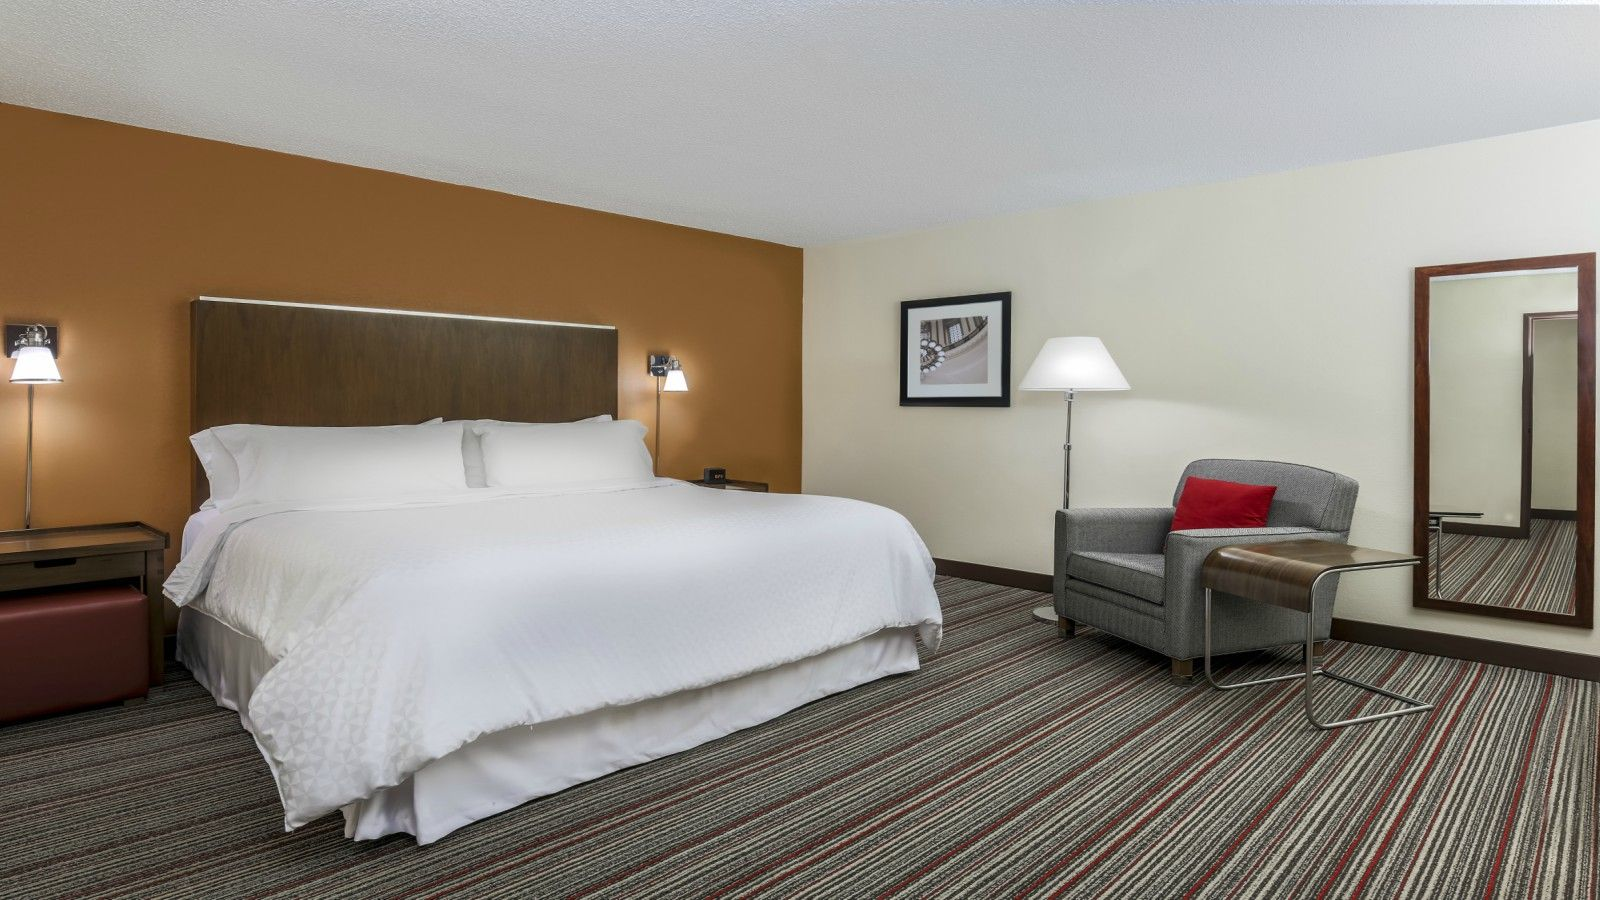 Bentonville, AR Accommodations - Executive Suites